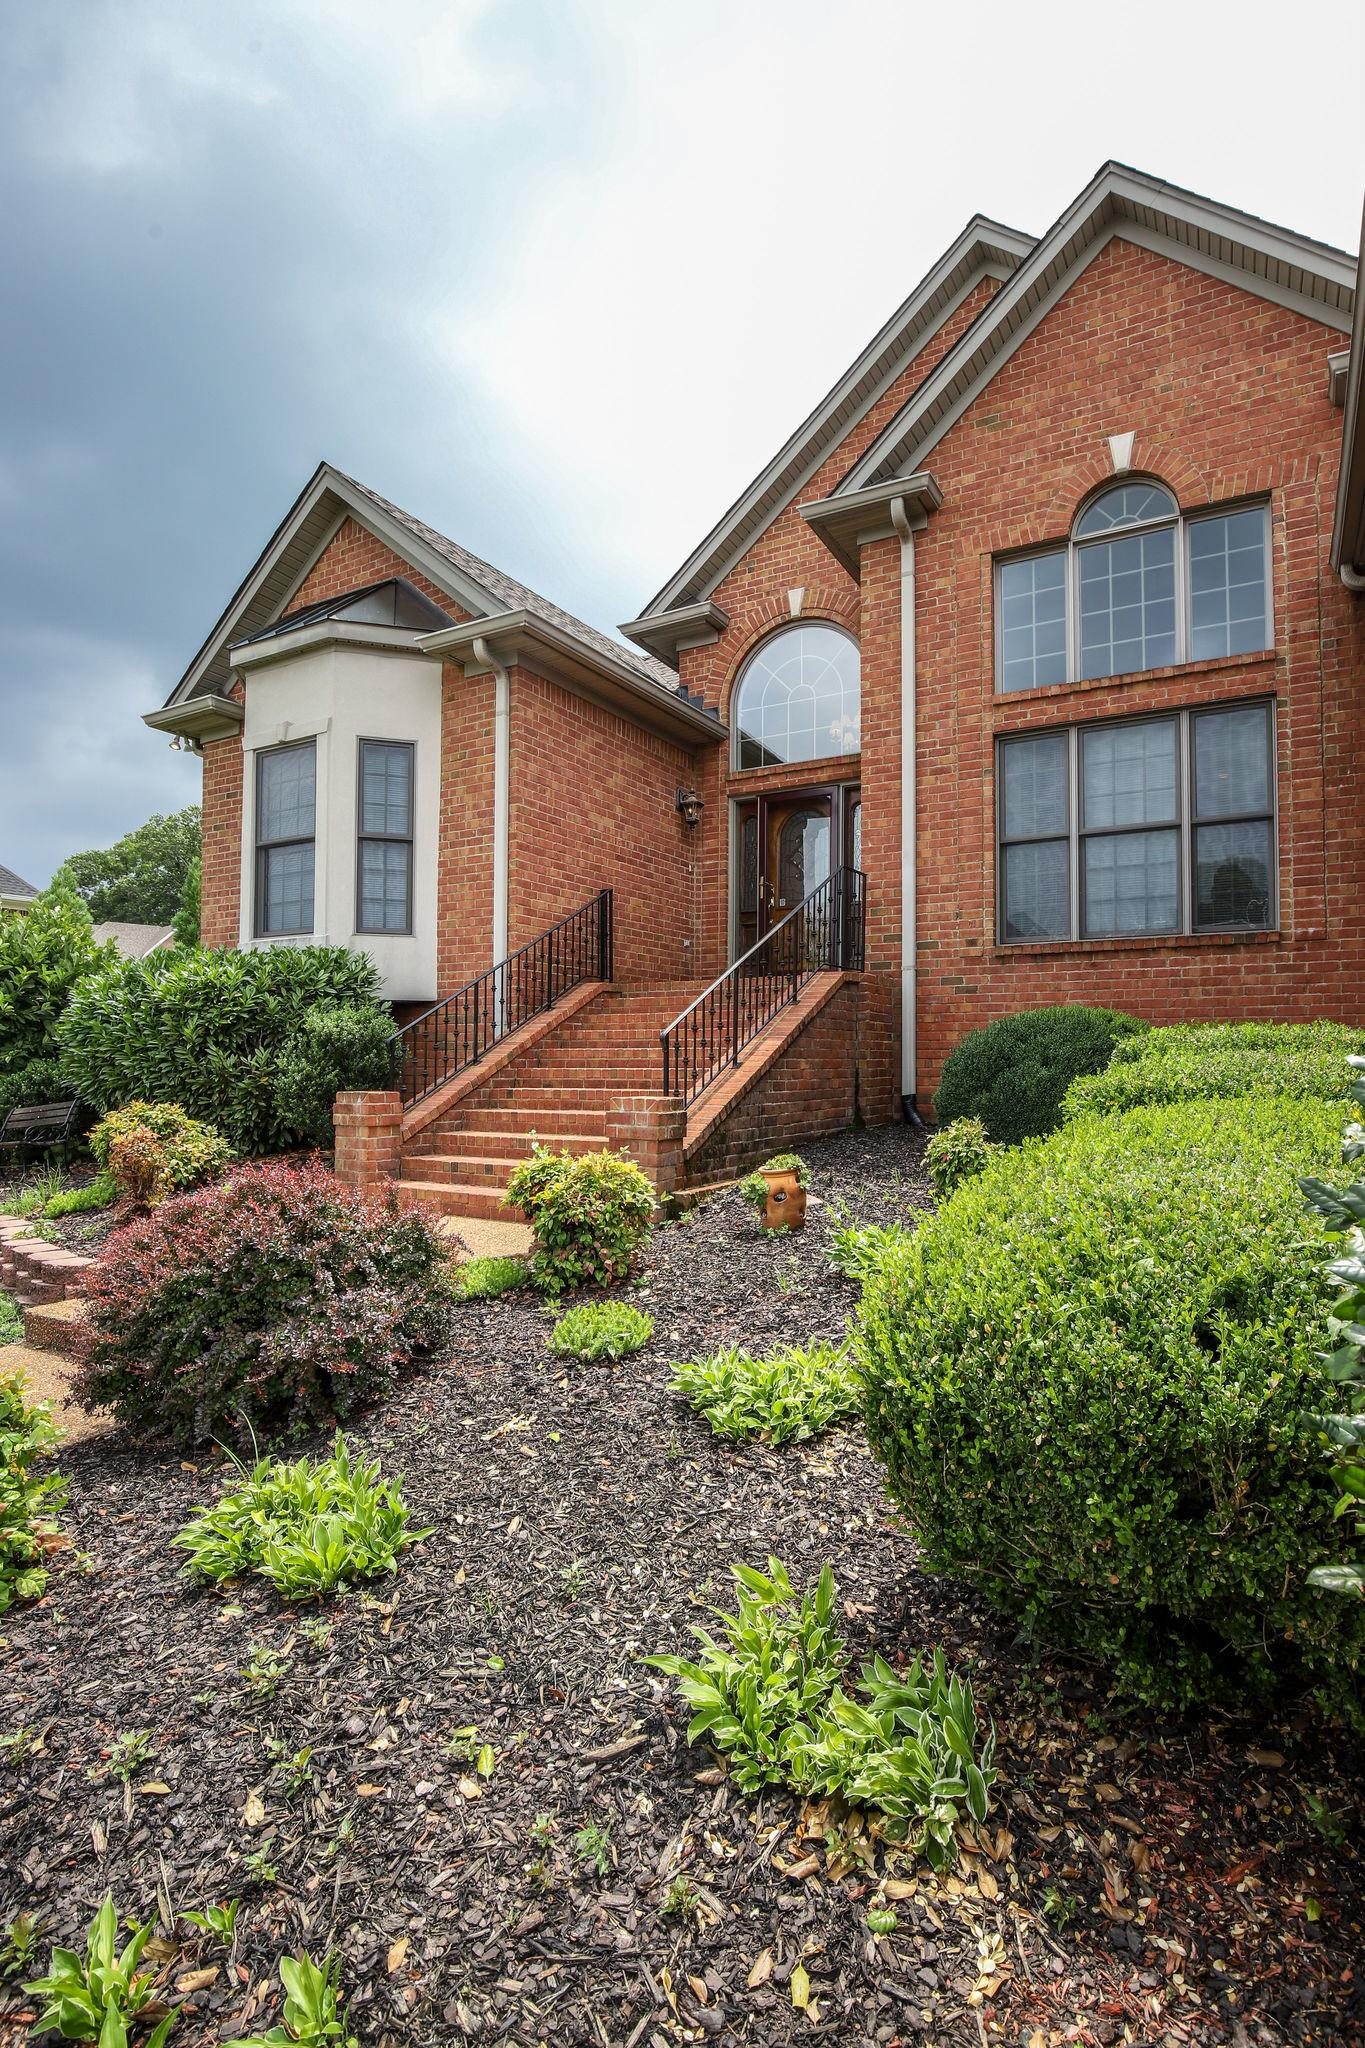 1157 Cleveland Hall Blvd, Old Hickory, TN 37138 - Old Hickory, TN real estate listing